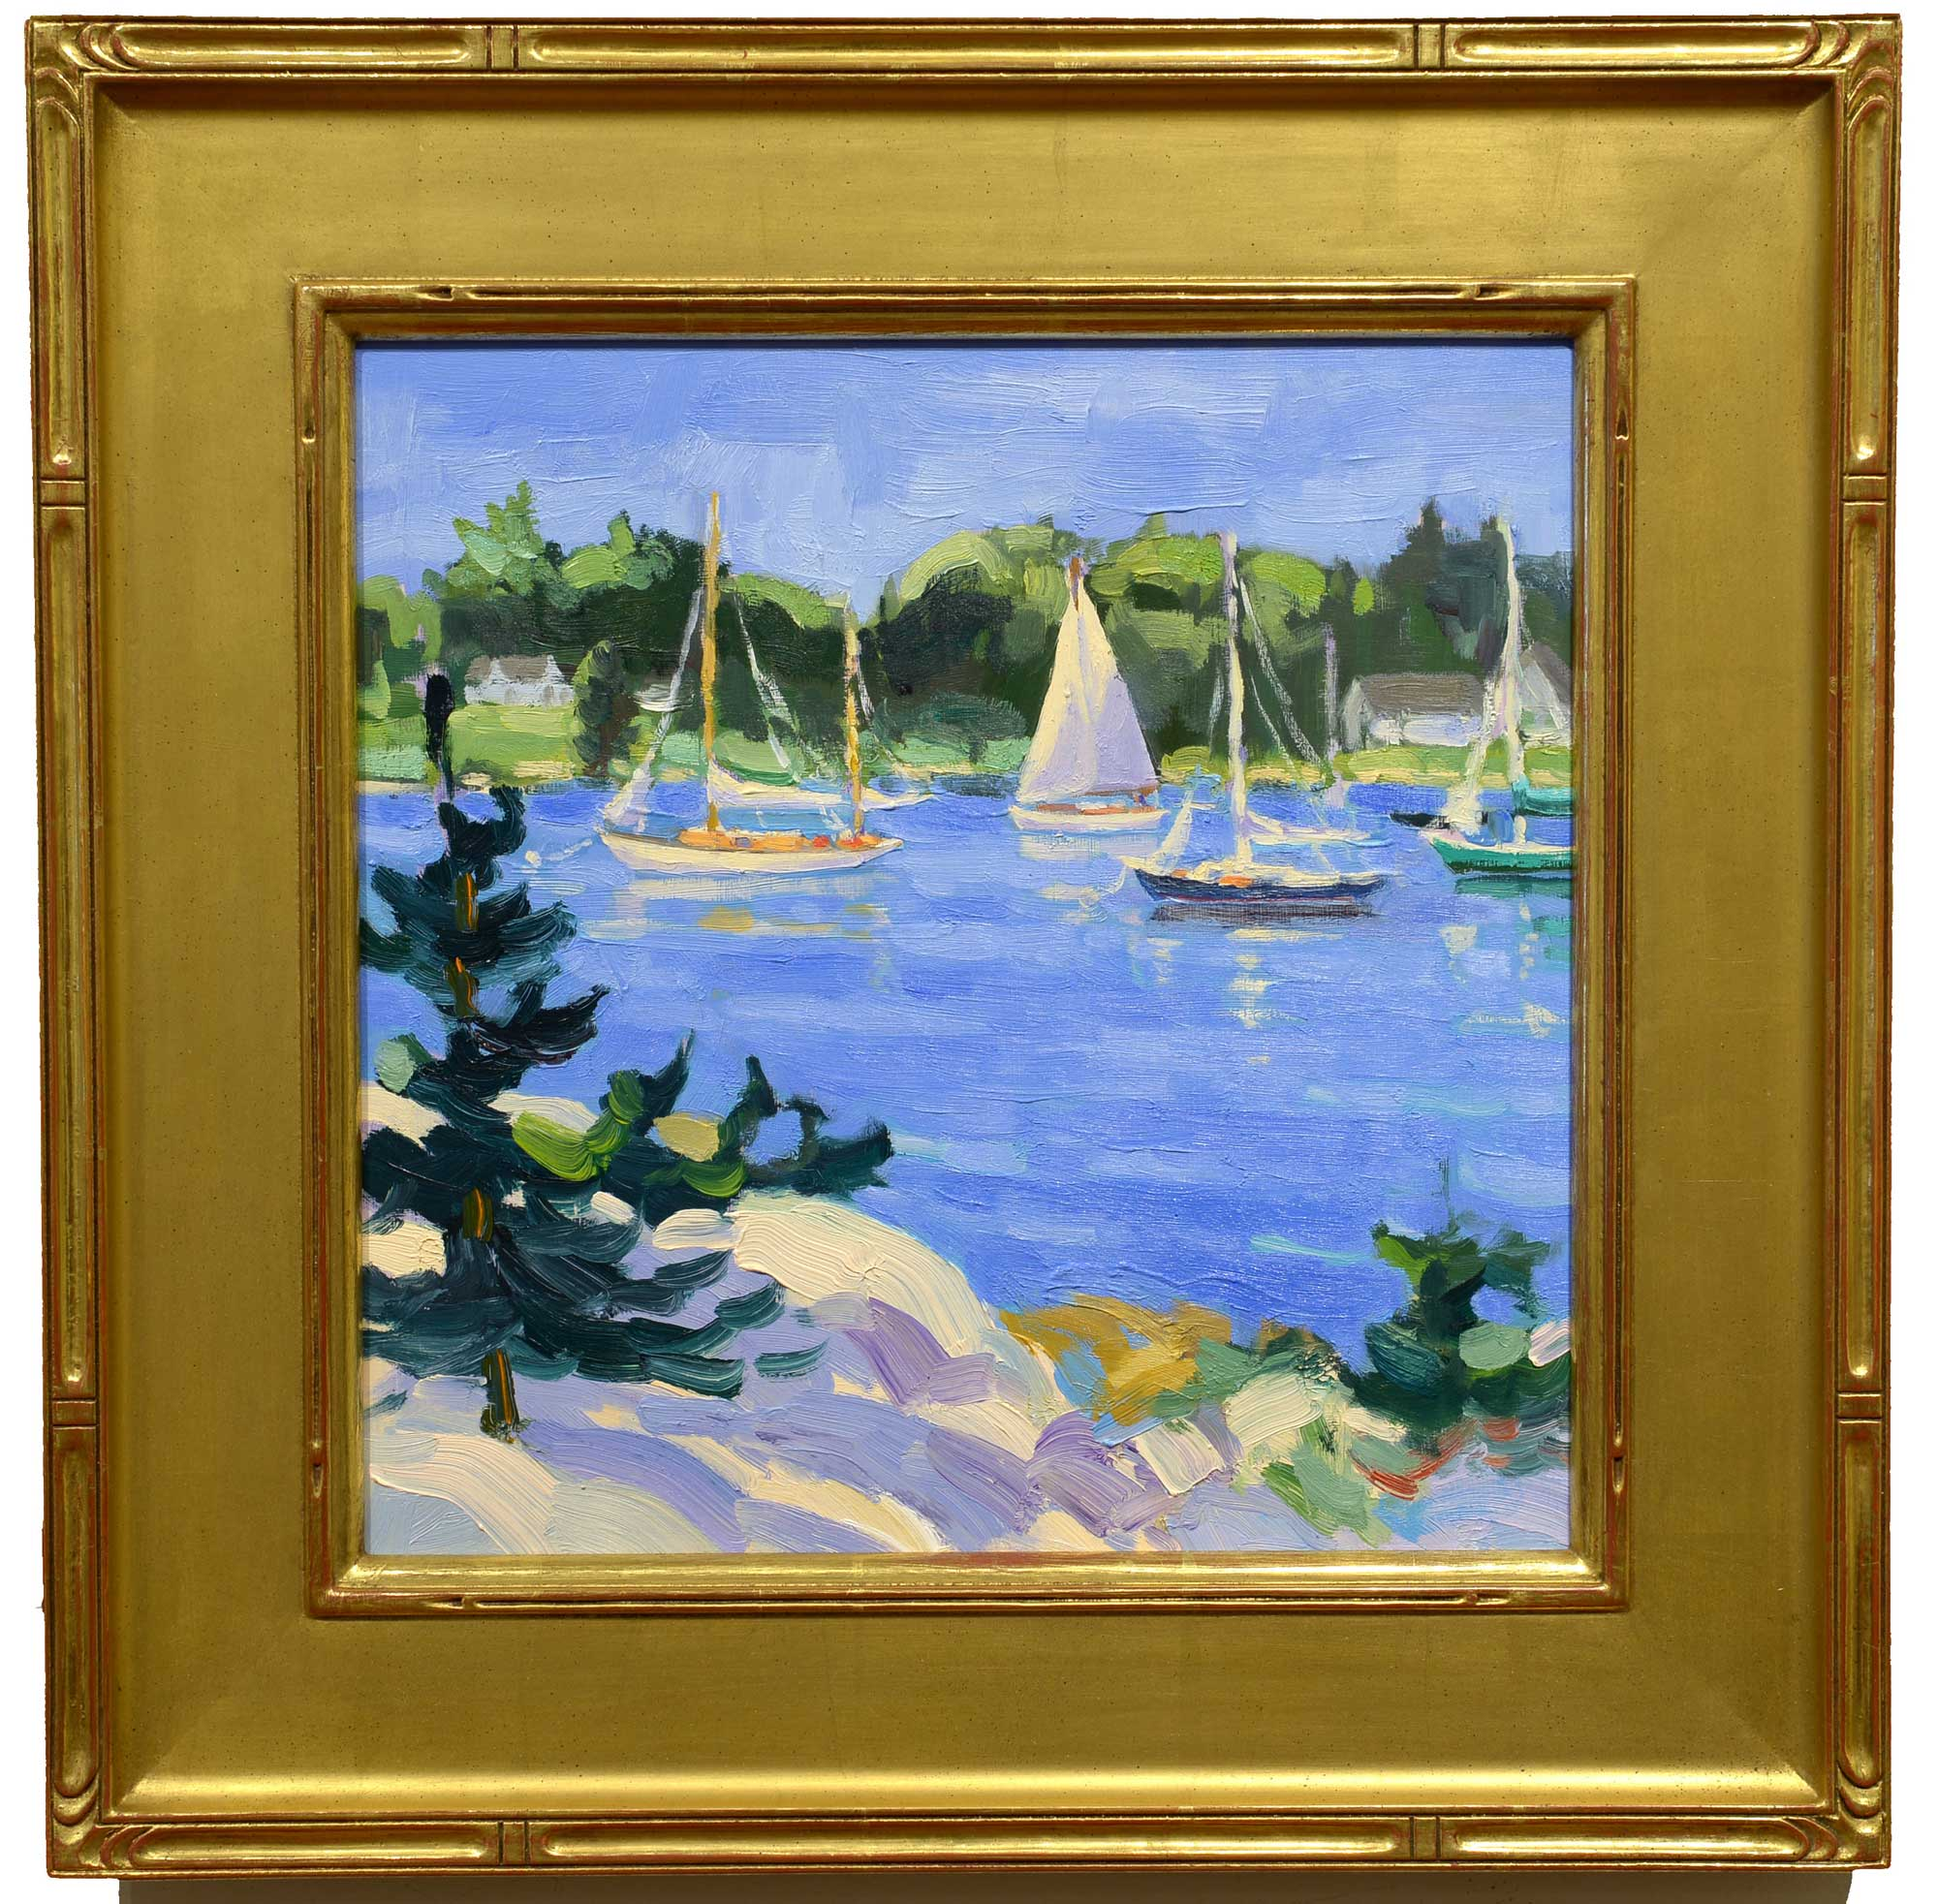 Keith Oehmig View from Chatto Island framed